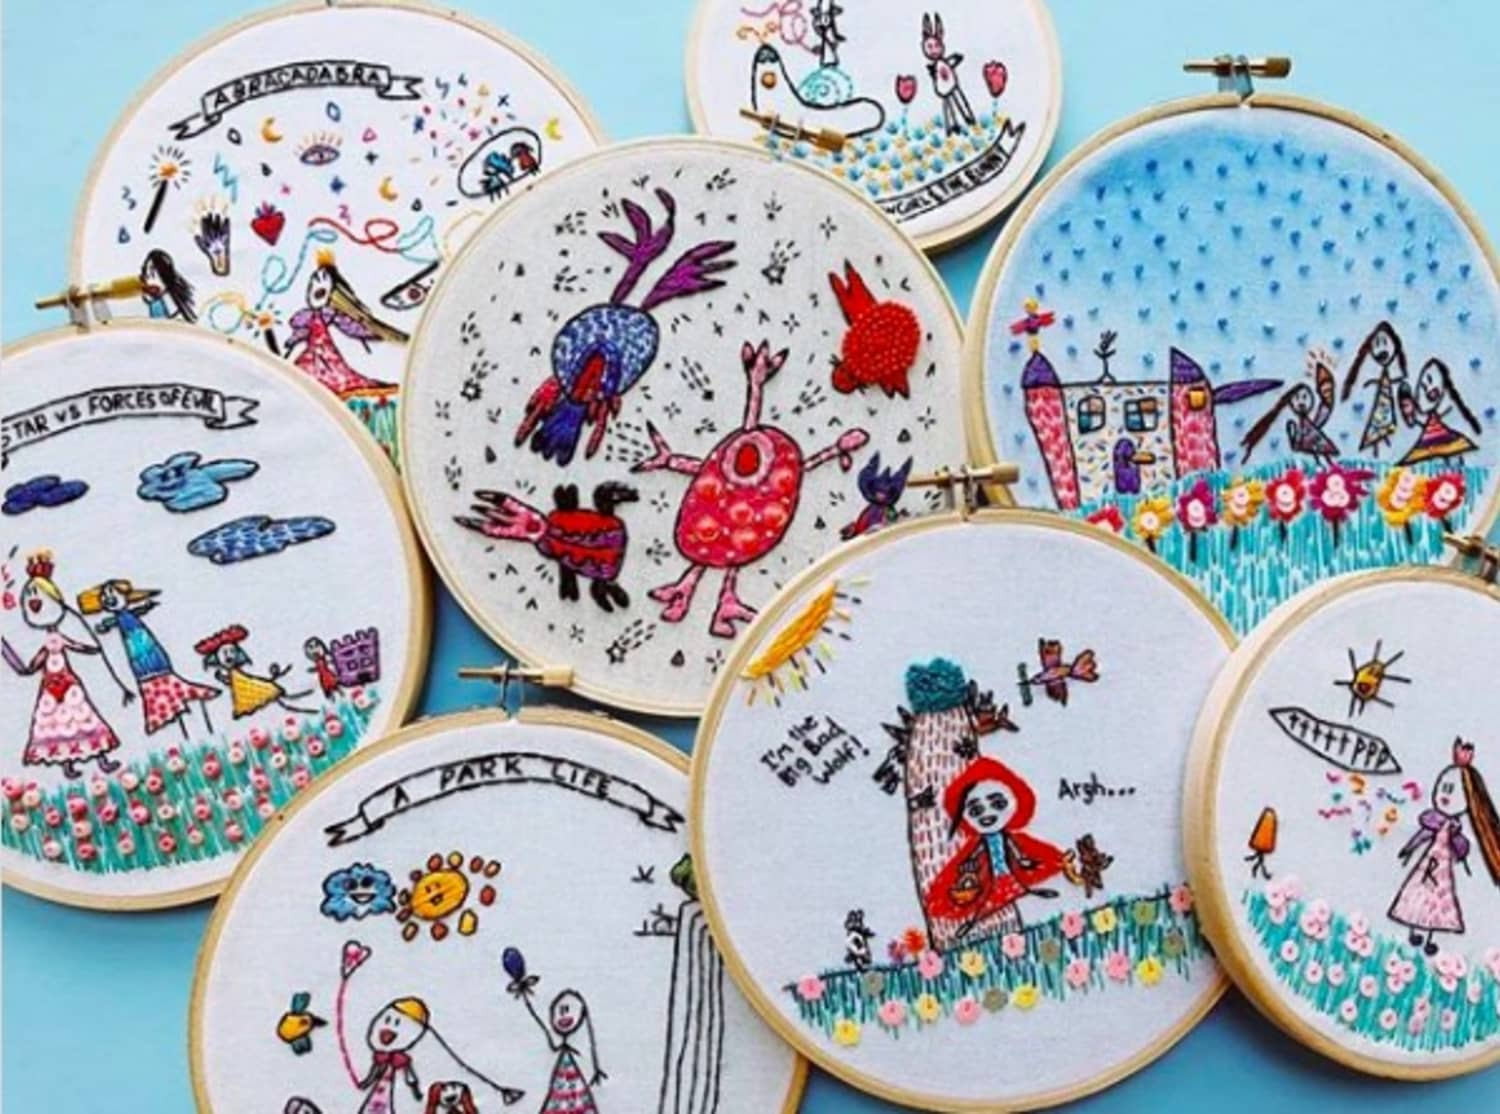 This Mom Translates Her Daughter's Drawings into Embroidery